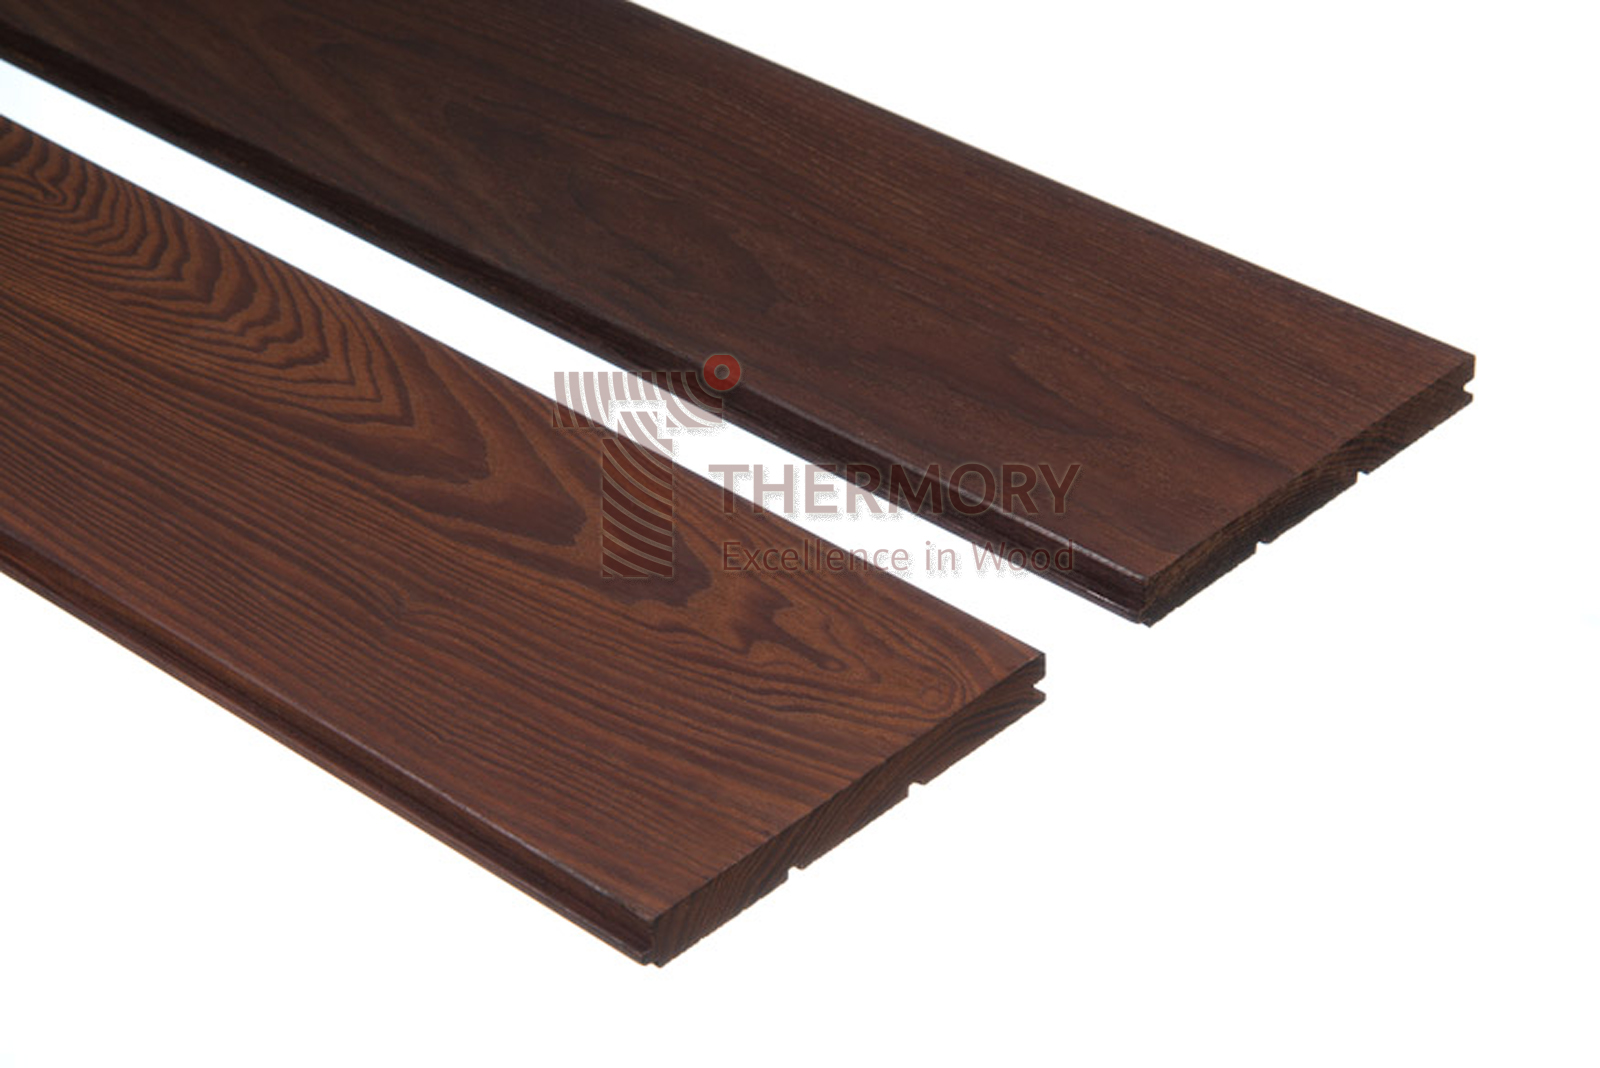 F3 15x130/150mm - This is a classic profile with no additional fitting systems required.